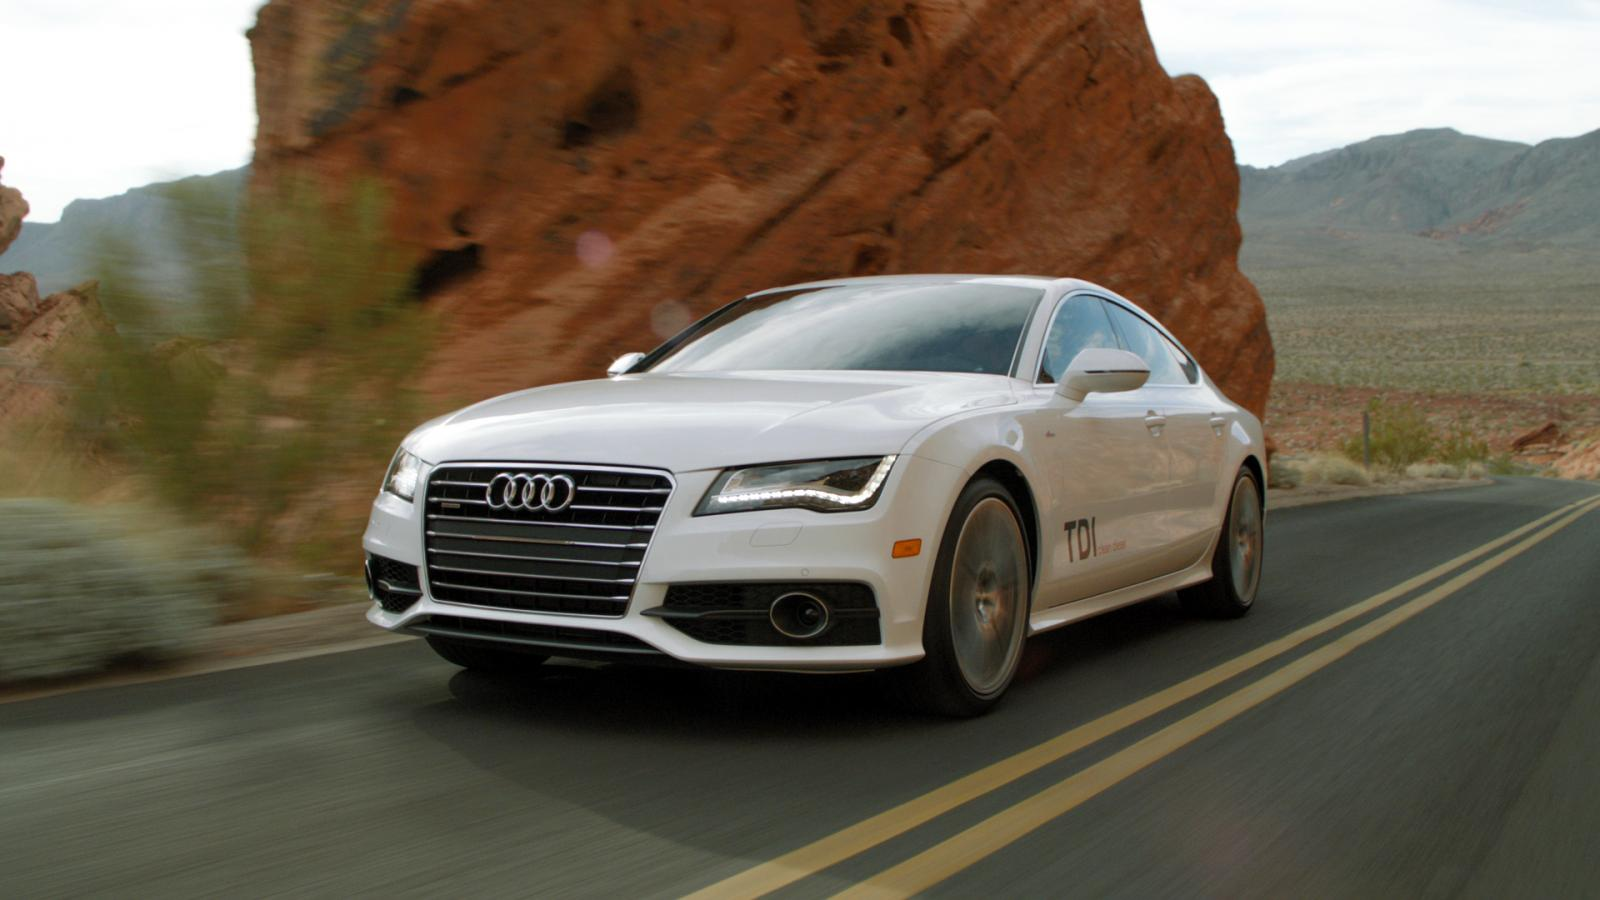 a7 Audi to introduce four new TDI clean diesel models to the U.S. Market at the L.A. Auto Show